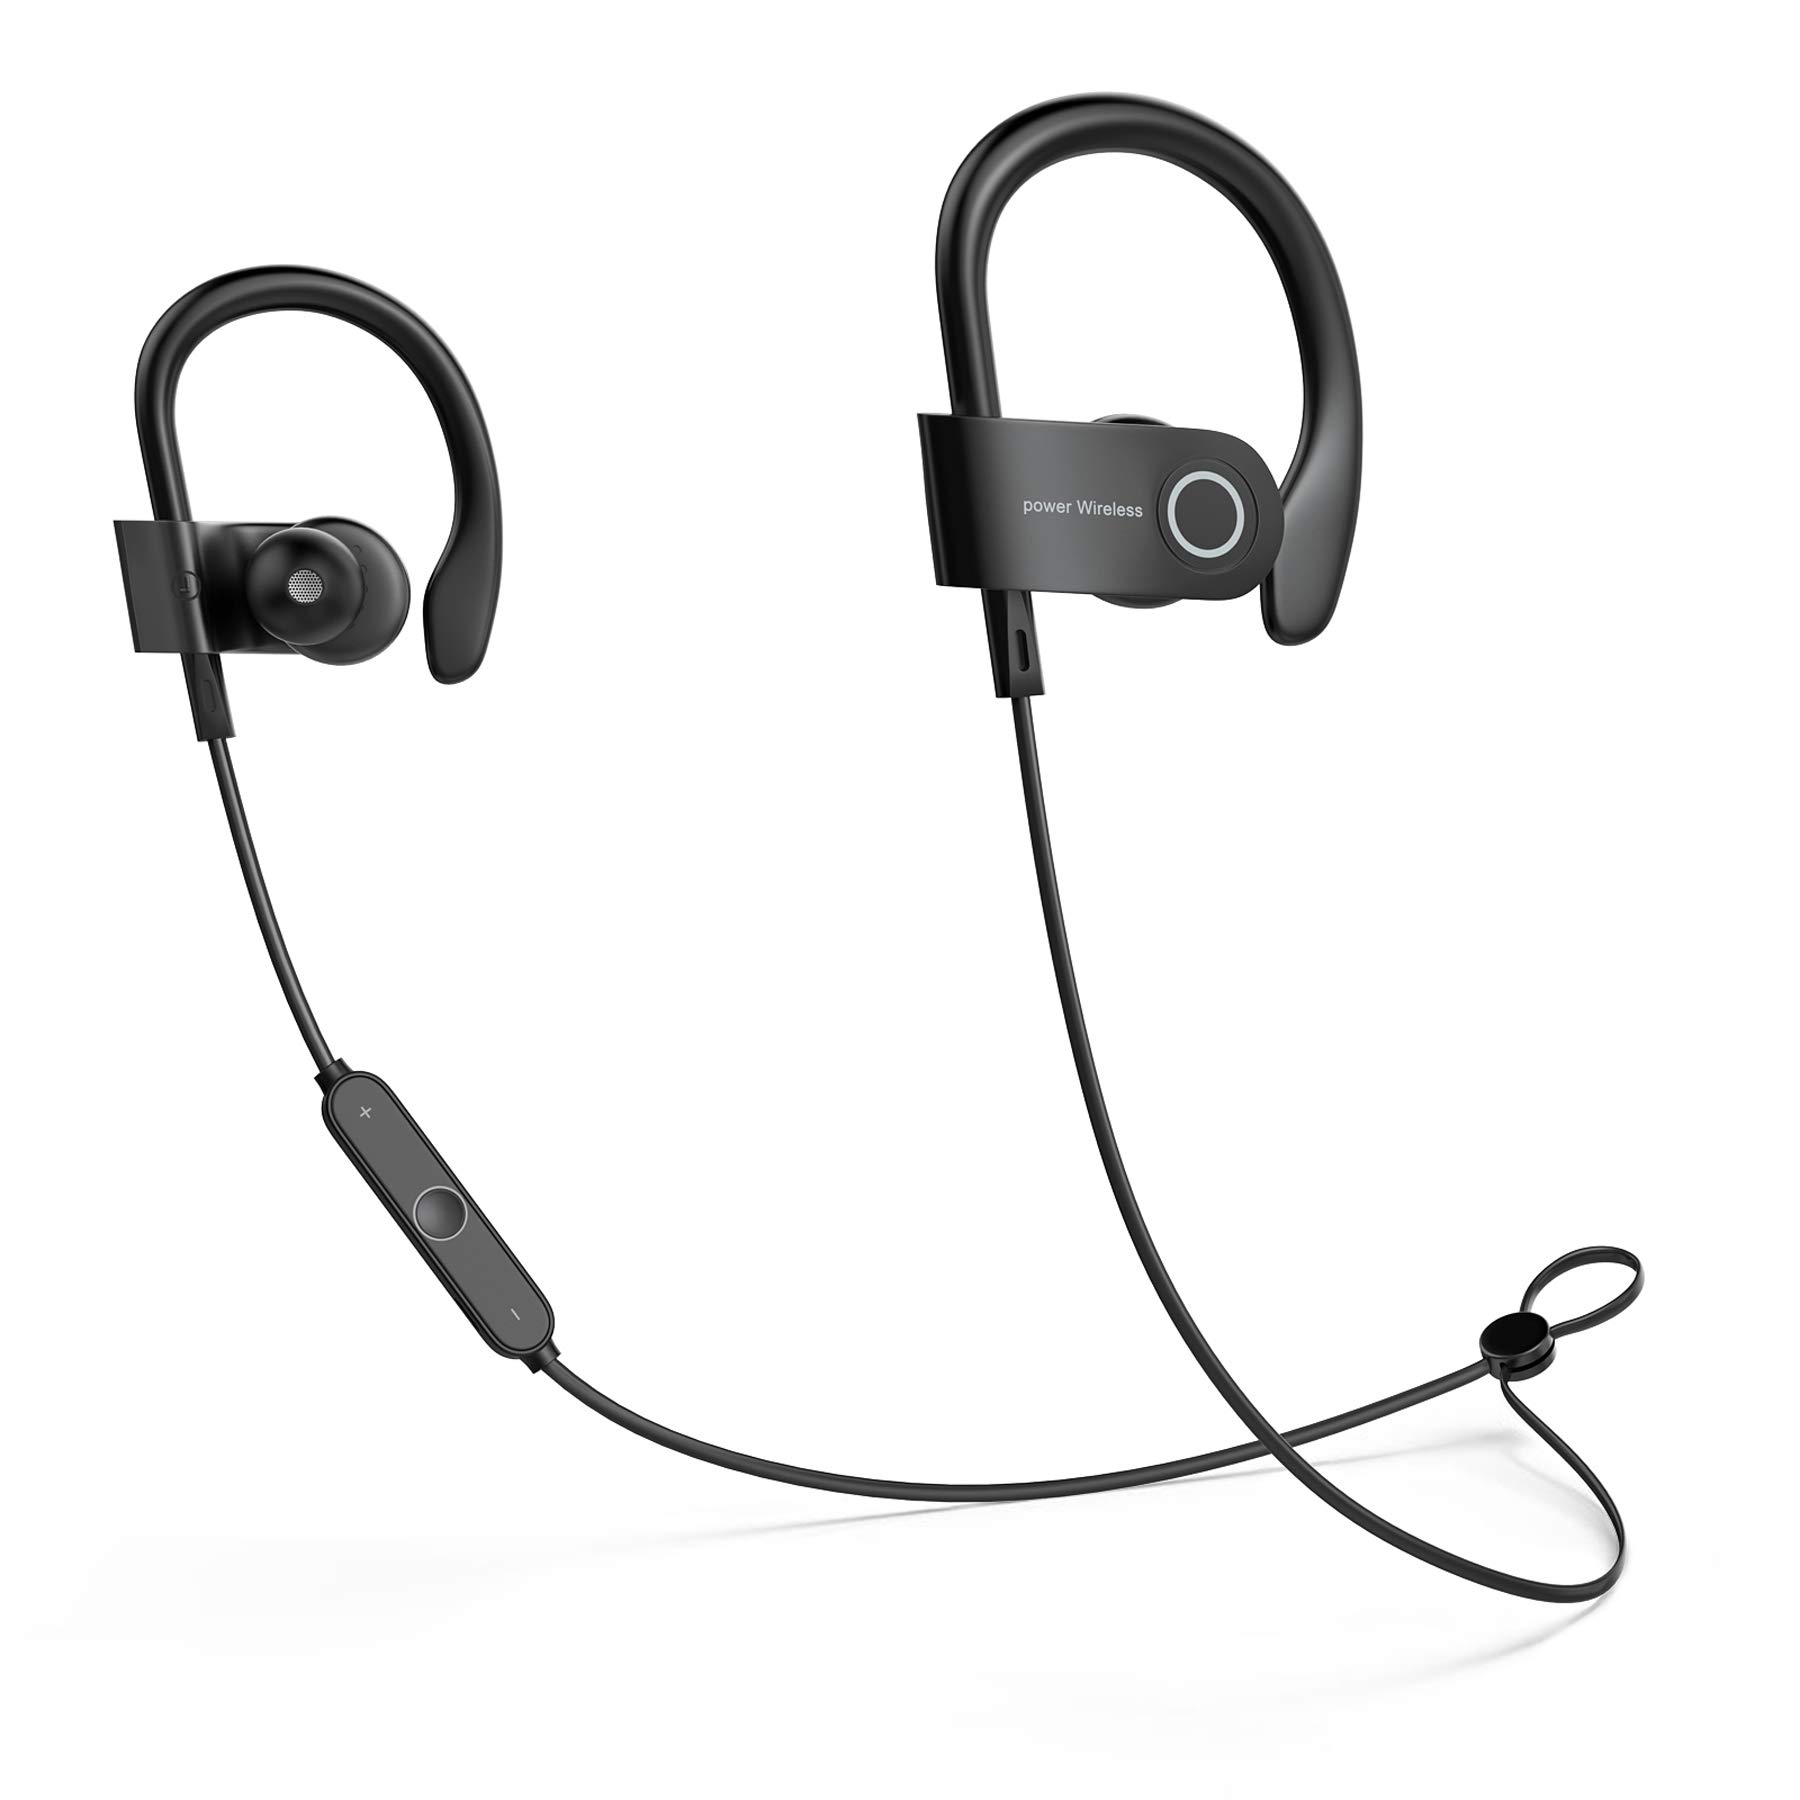 Headphones, Sweatproof High Fidelity Stereo Earbuds, Lightweight and Noise Canceling Earbuds Fit for Workout